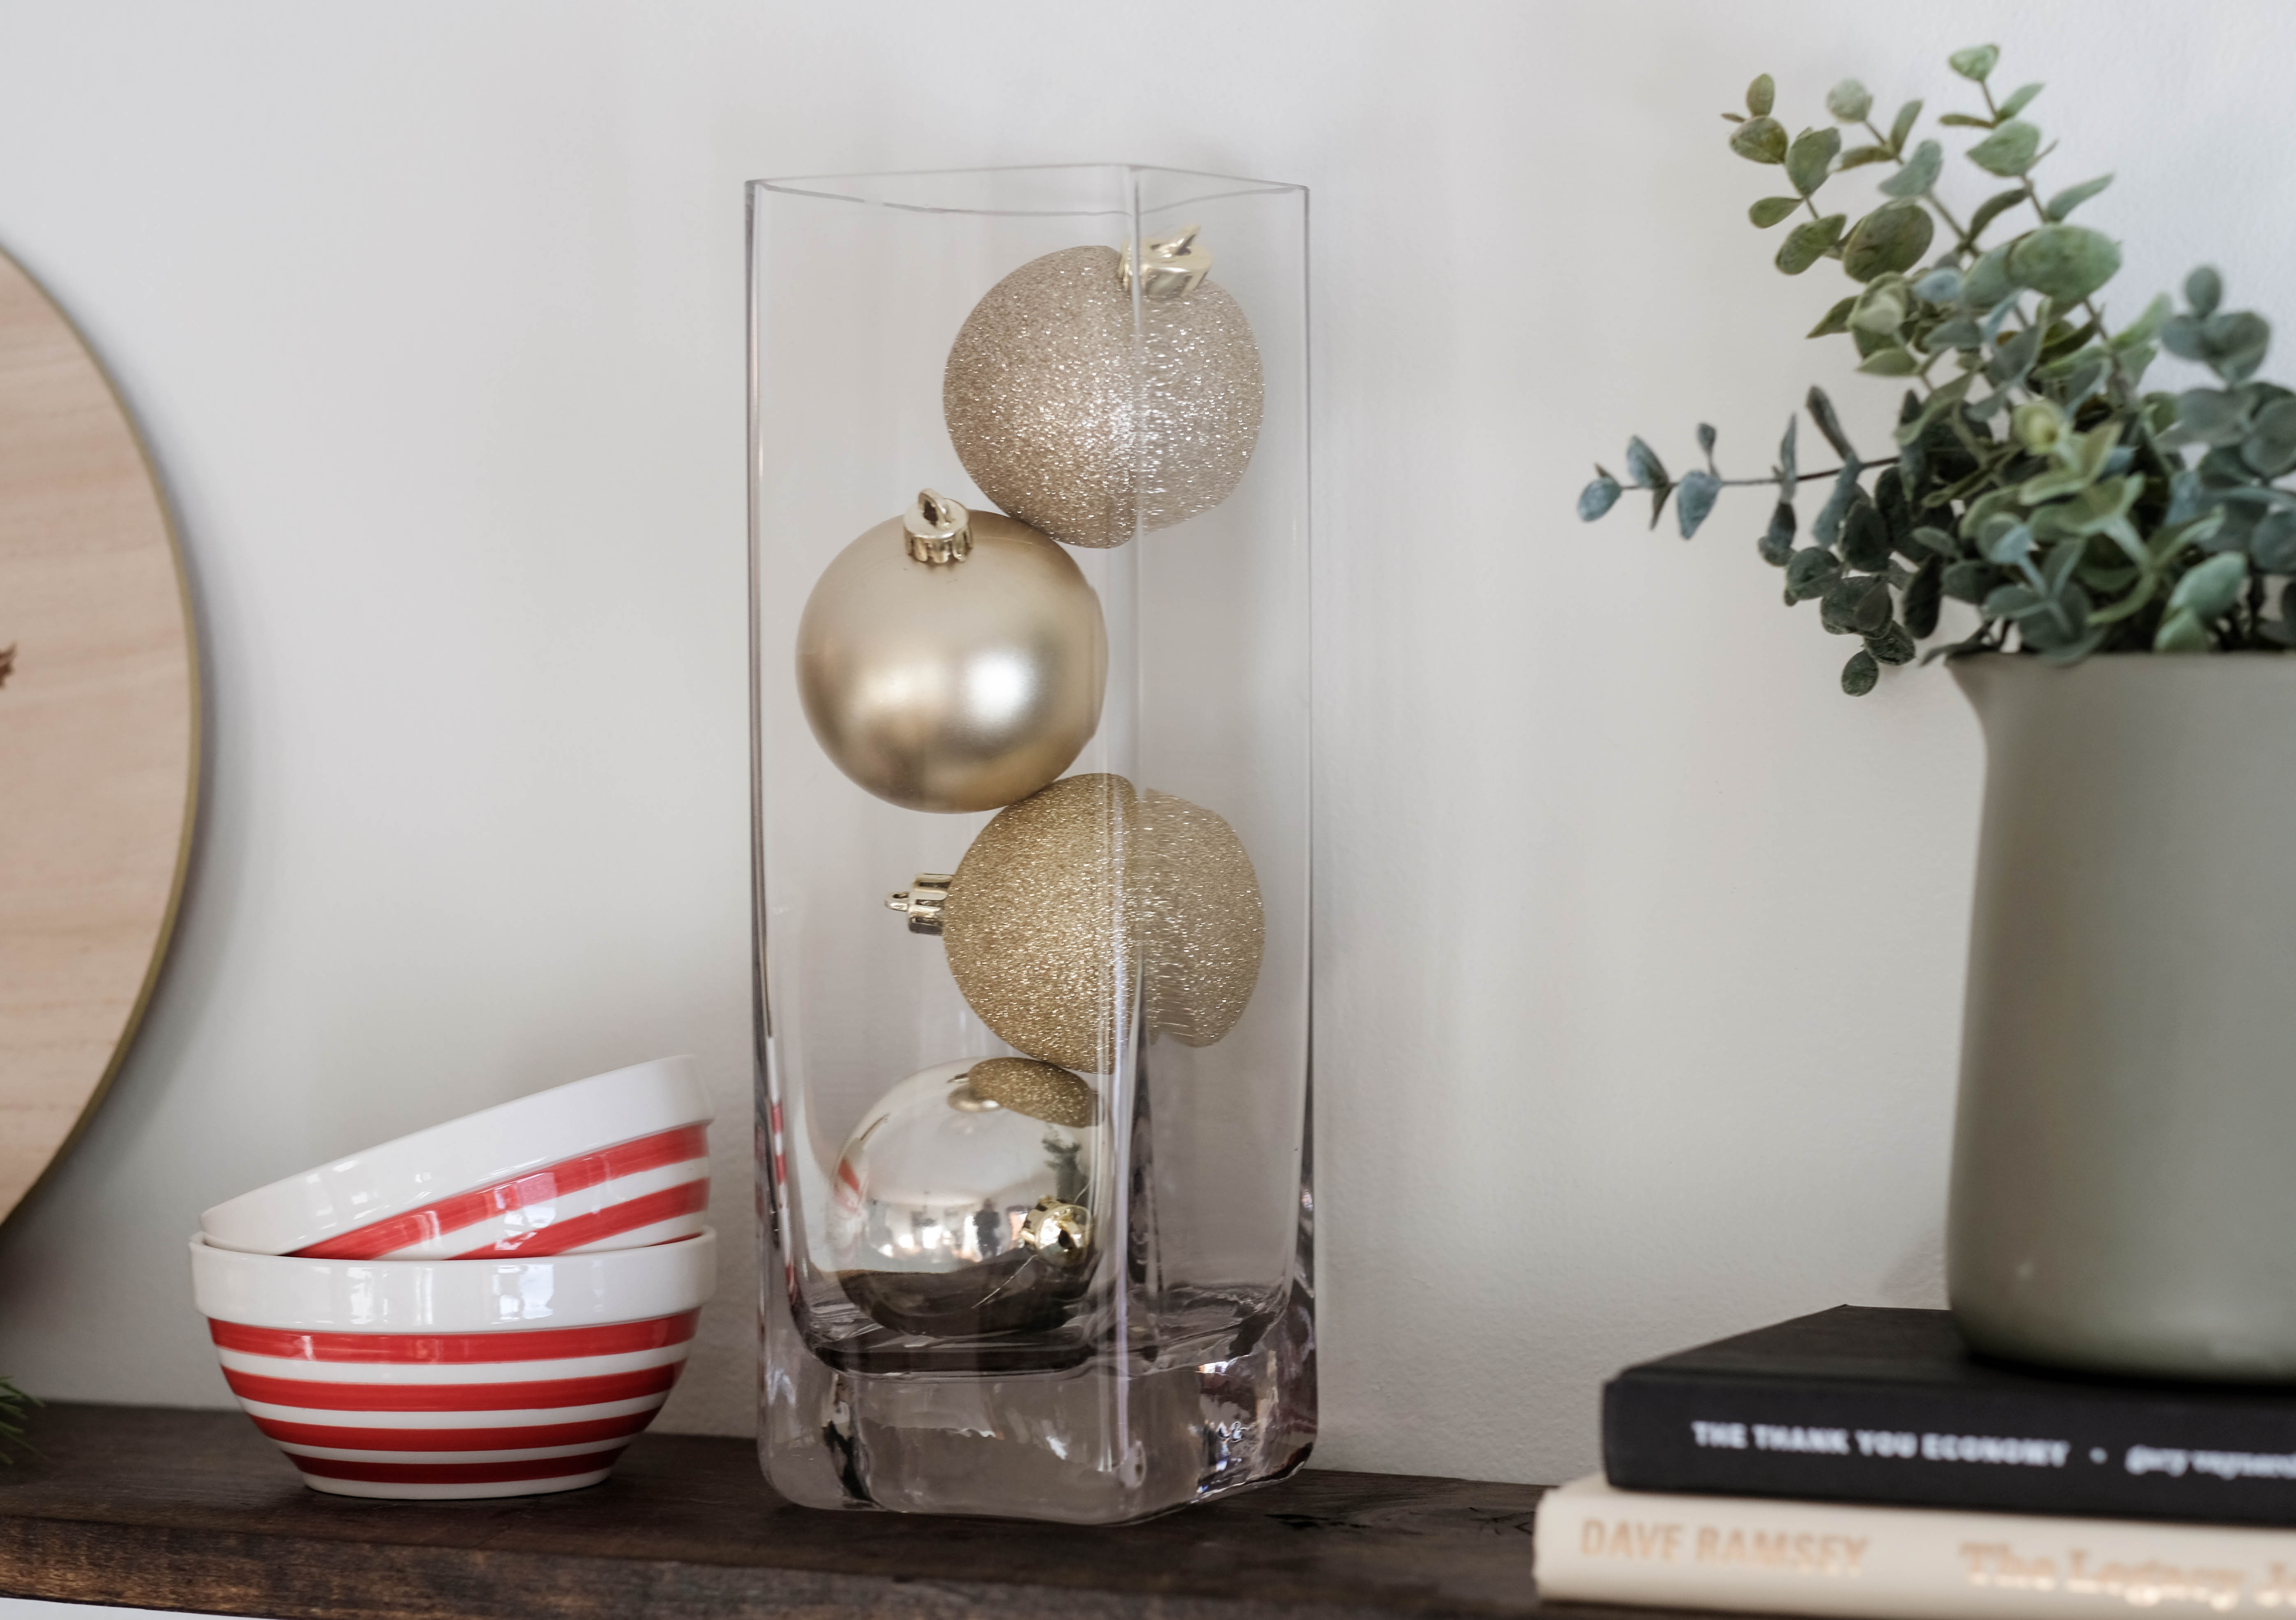 Vase filled with christmas ornaments